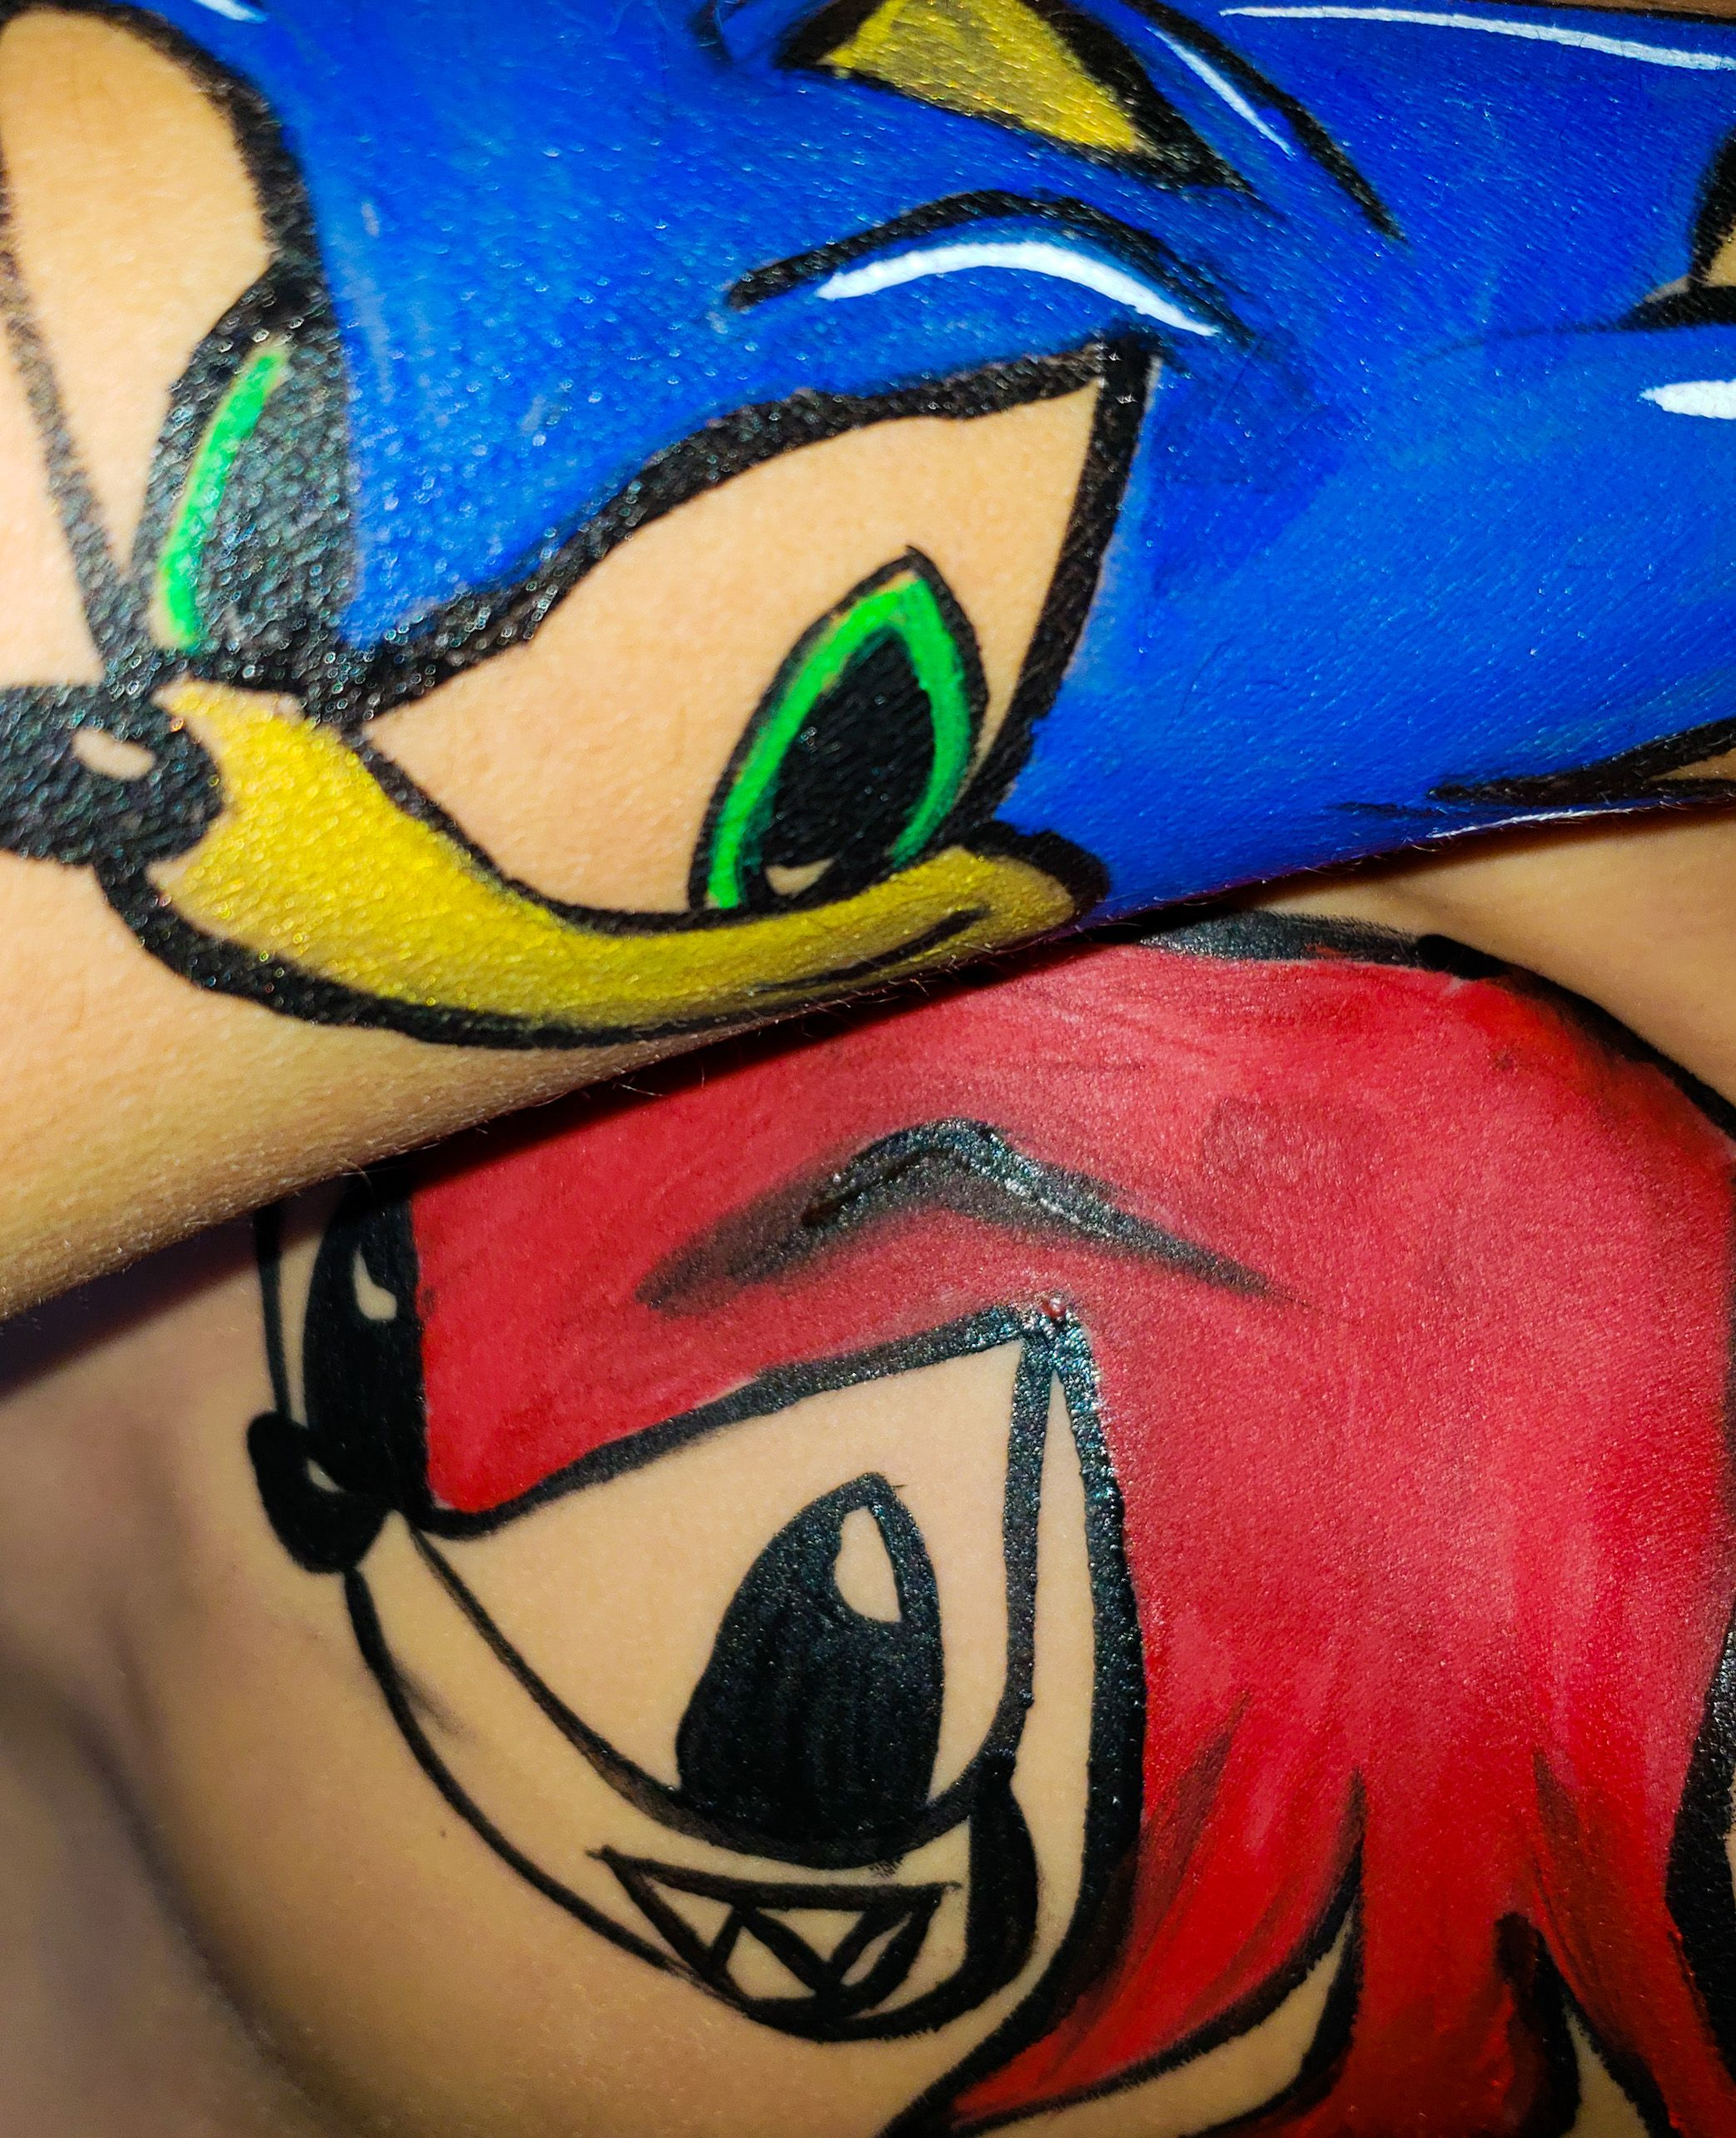 Facepainting of Sonic and Knuckles using